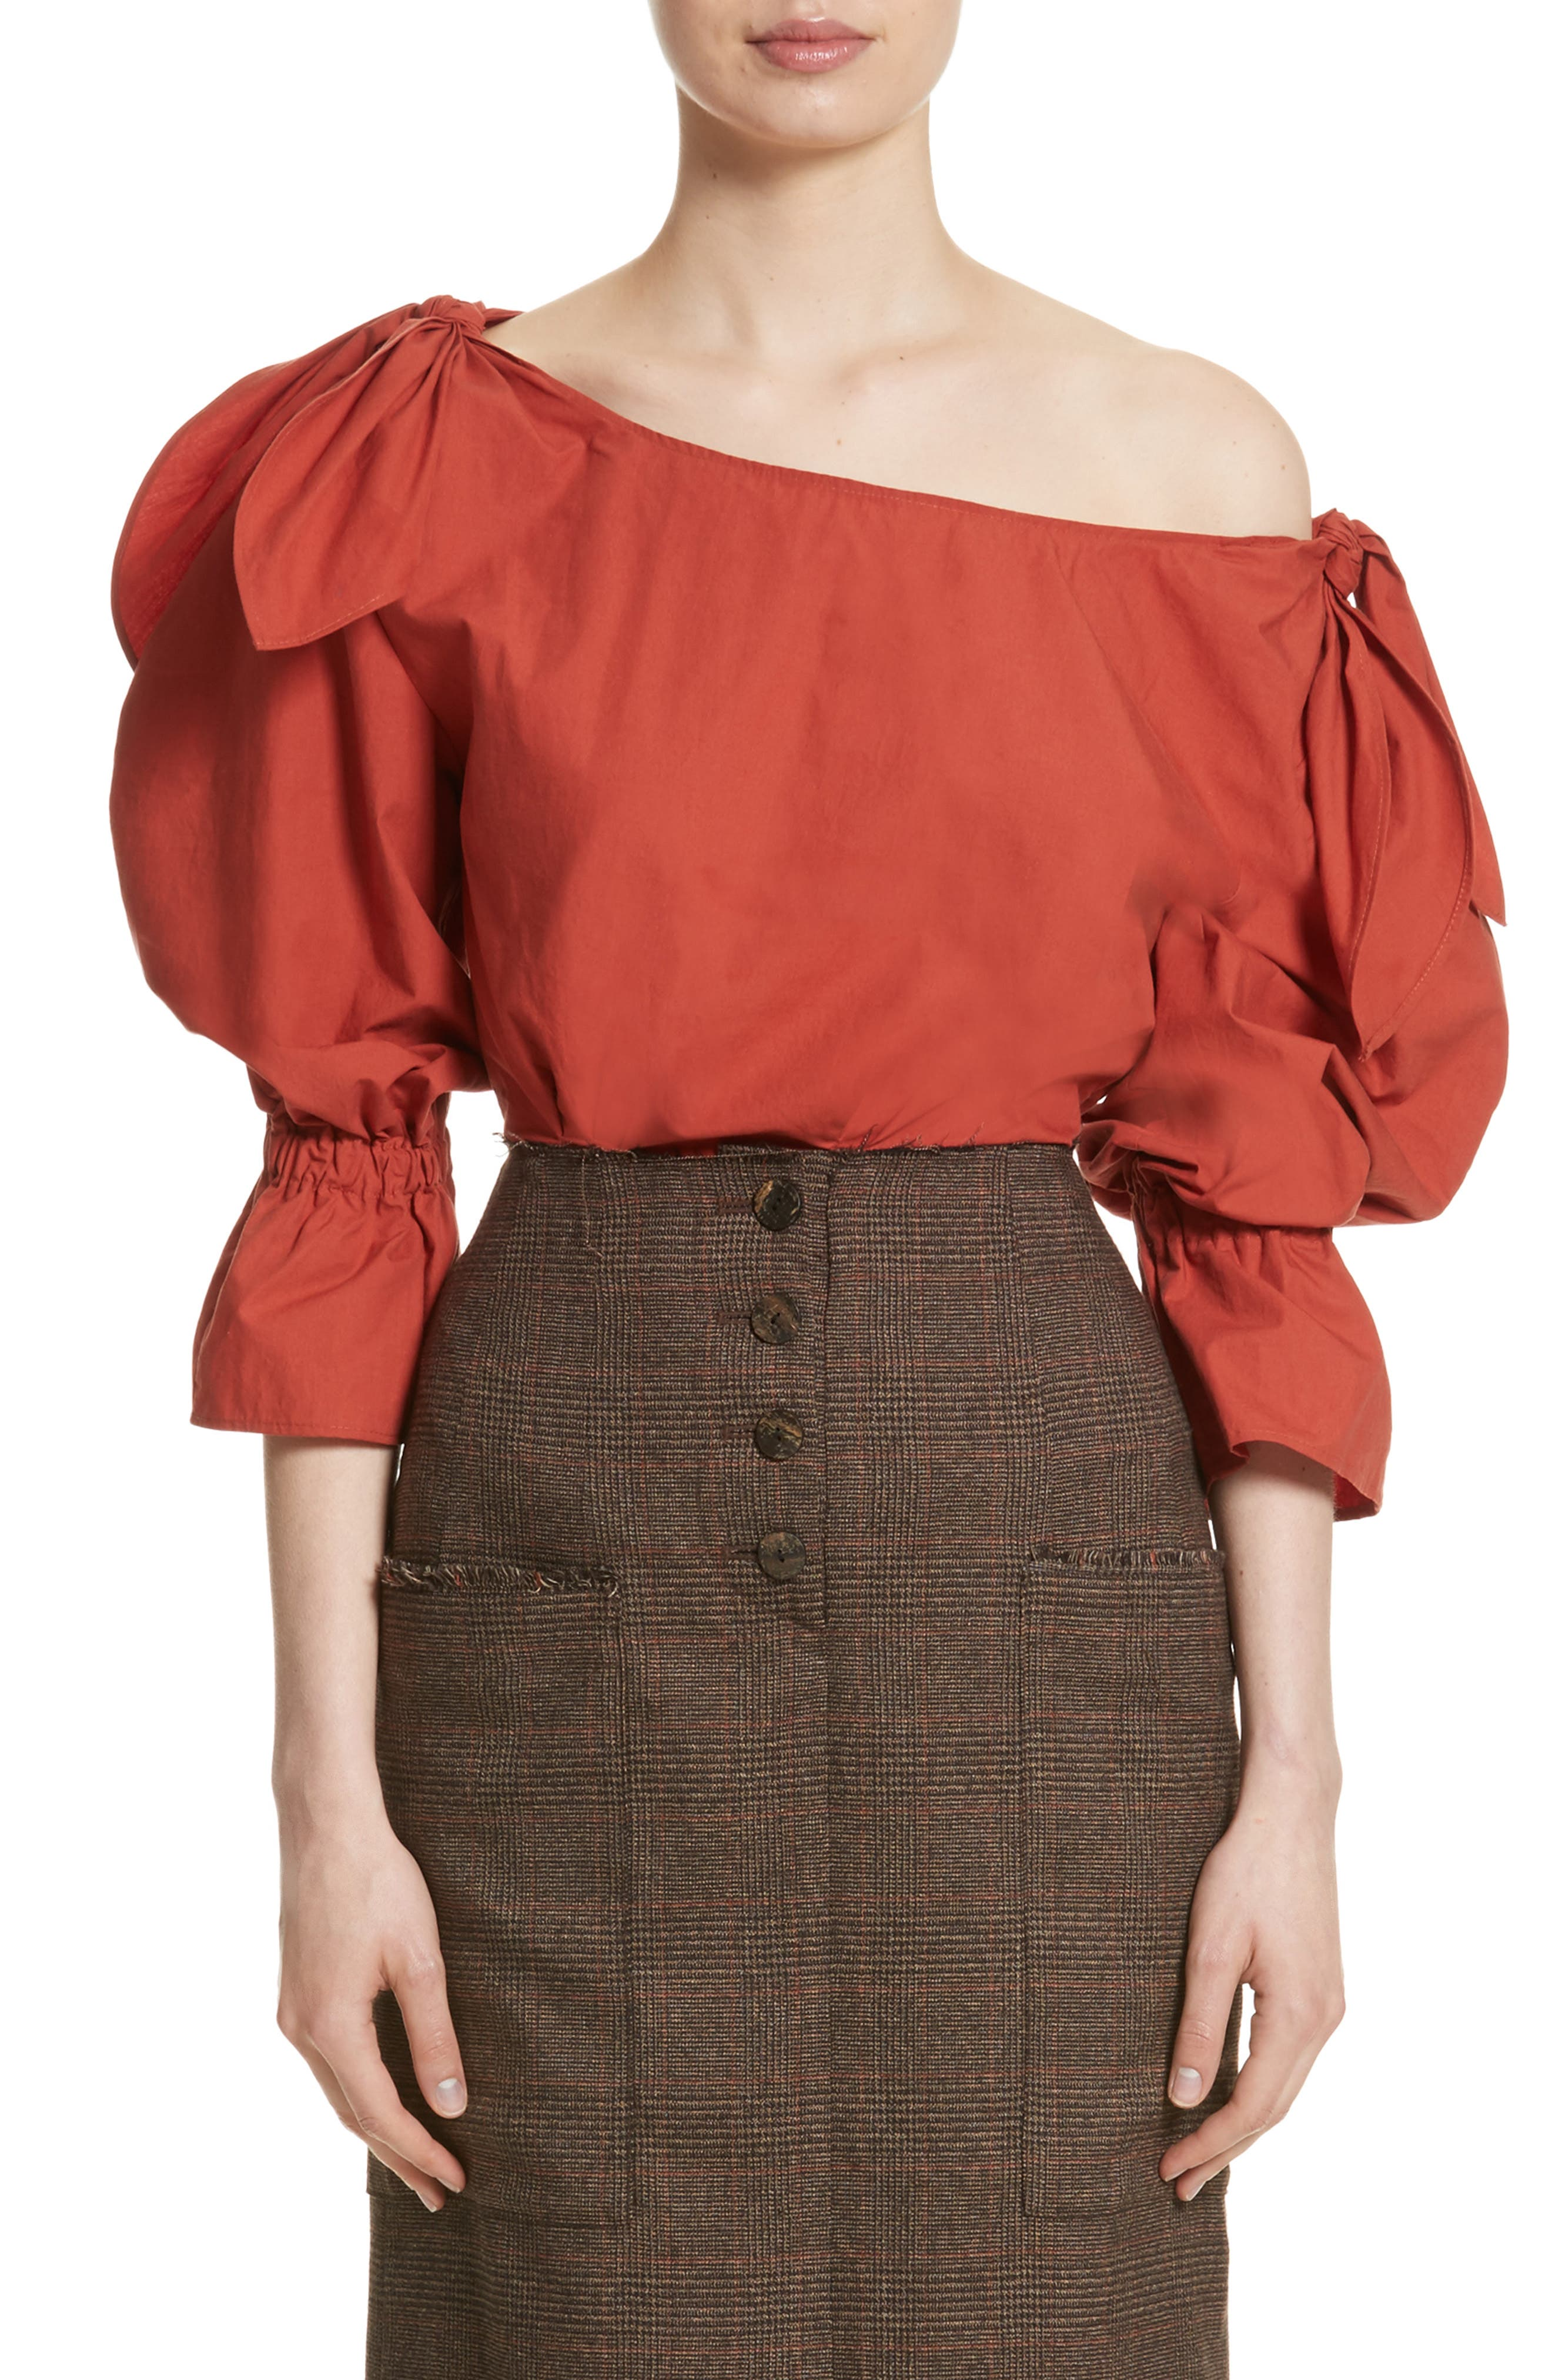 Michelle One-Shoulder Puff Sleeve Blouse,                             Main thumbnail 1, color,                             Rust